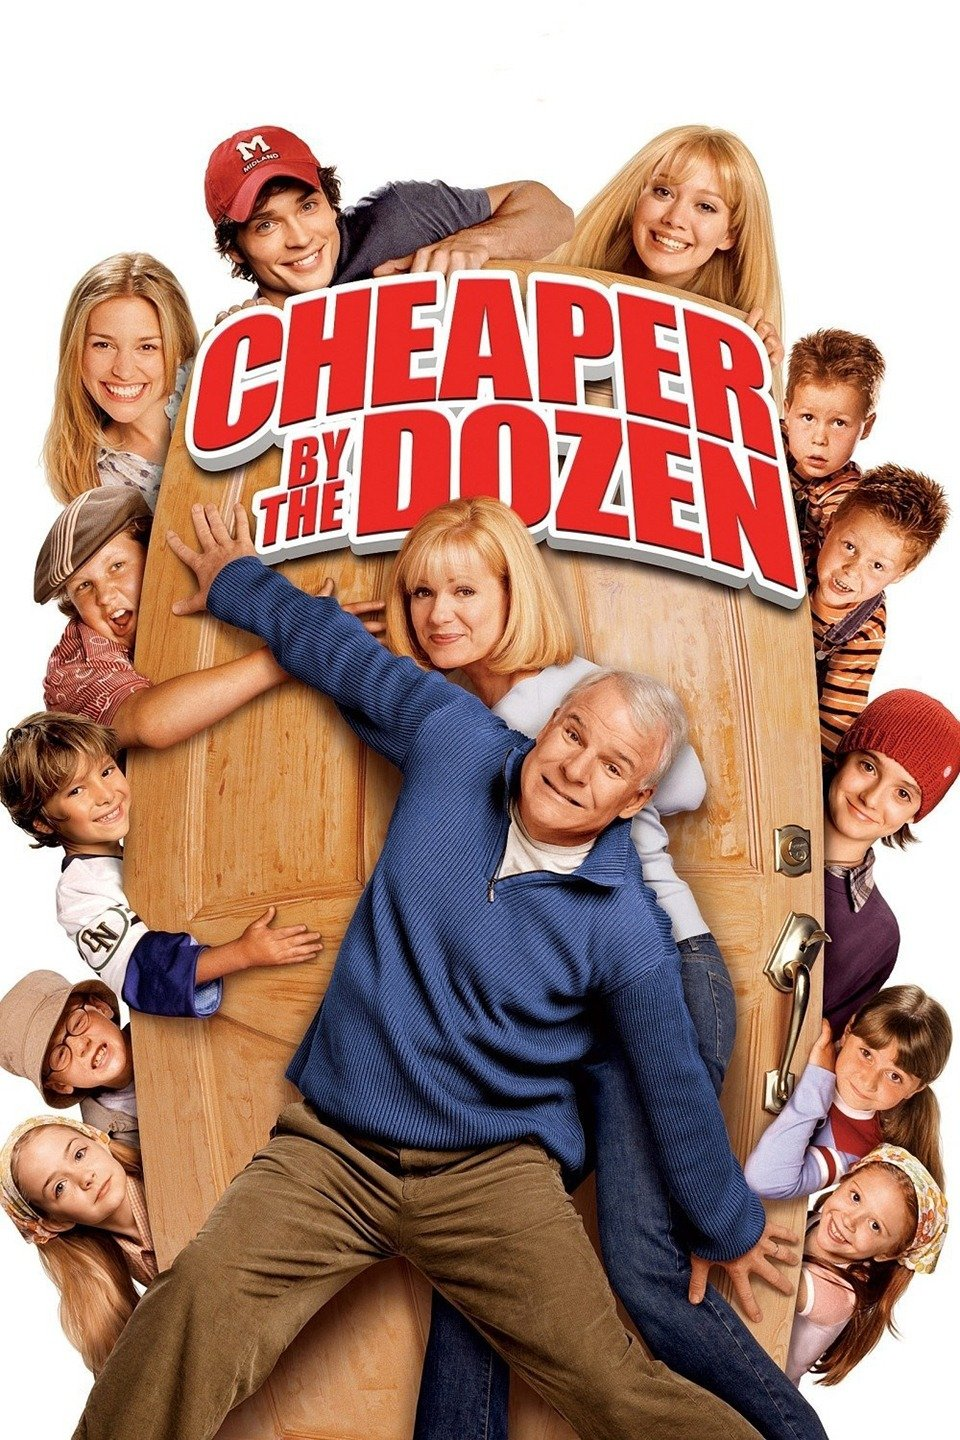 Cheaper by the Dozen, 2003